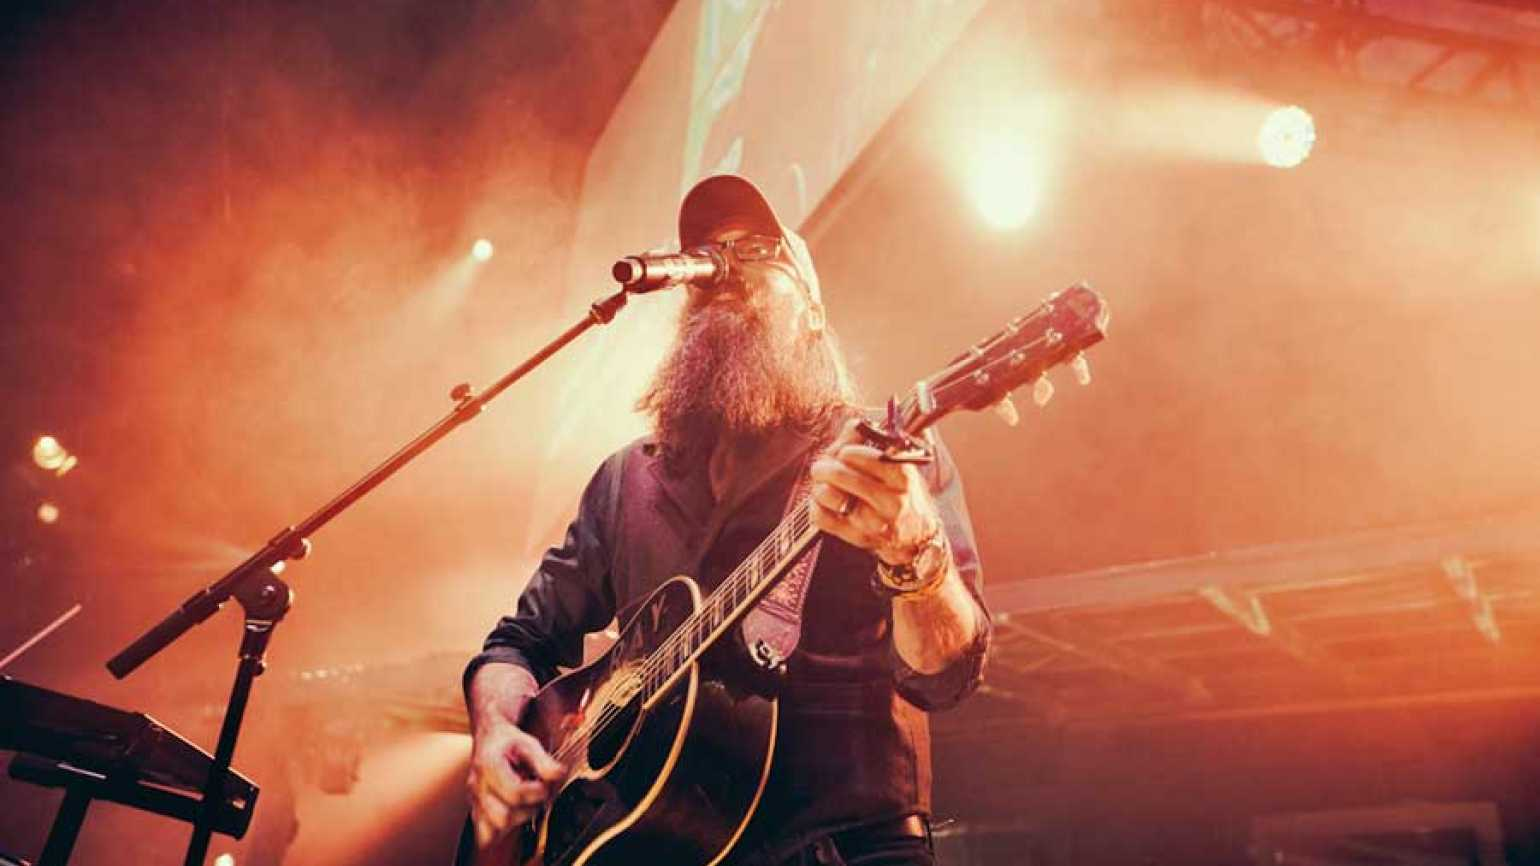 Crowder singing on stage - photo credit: Bobby K Russell